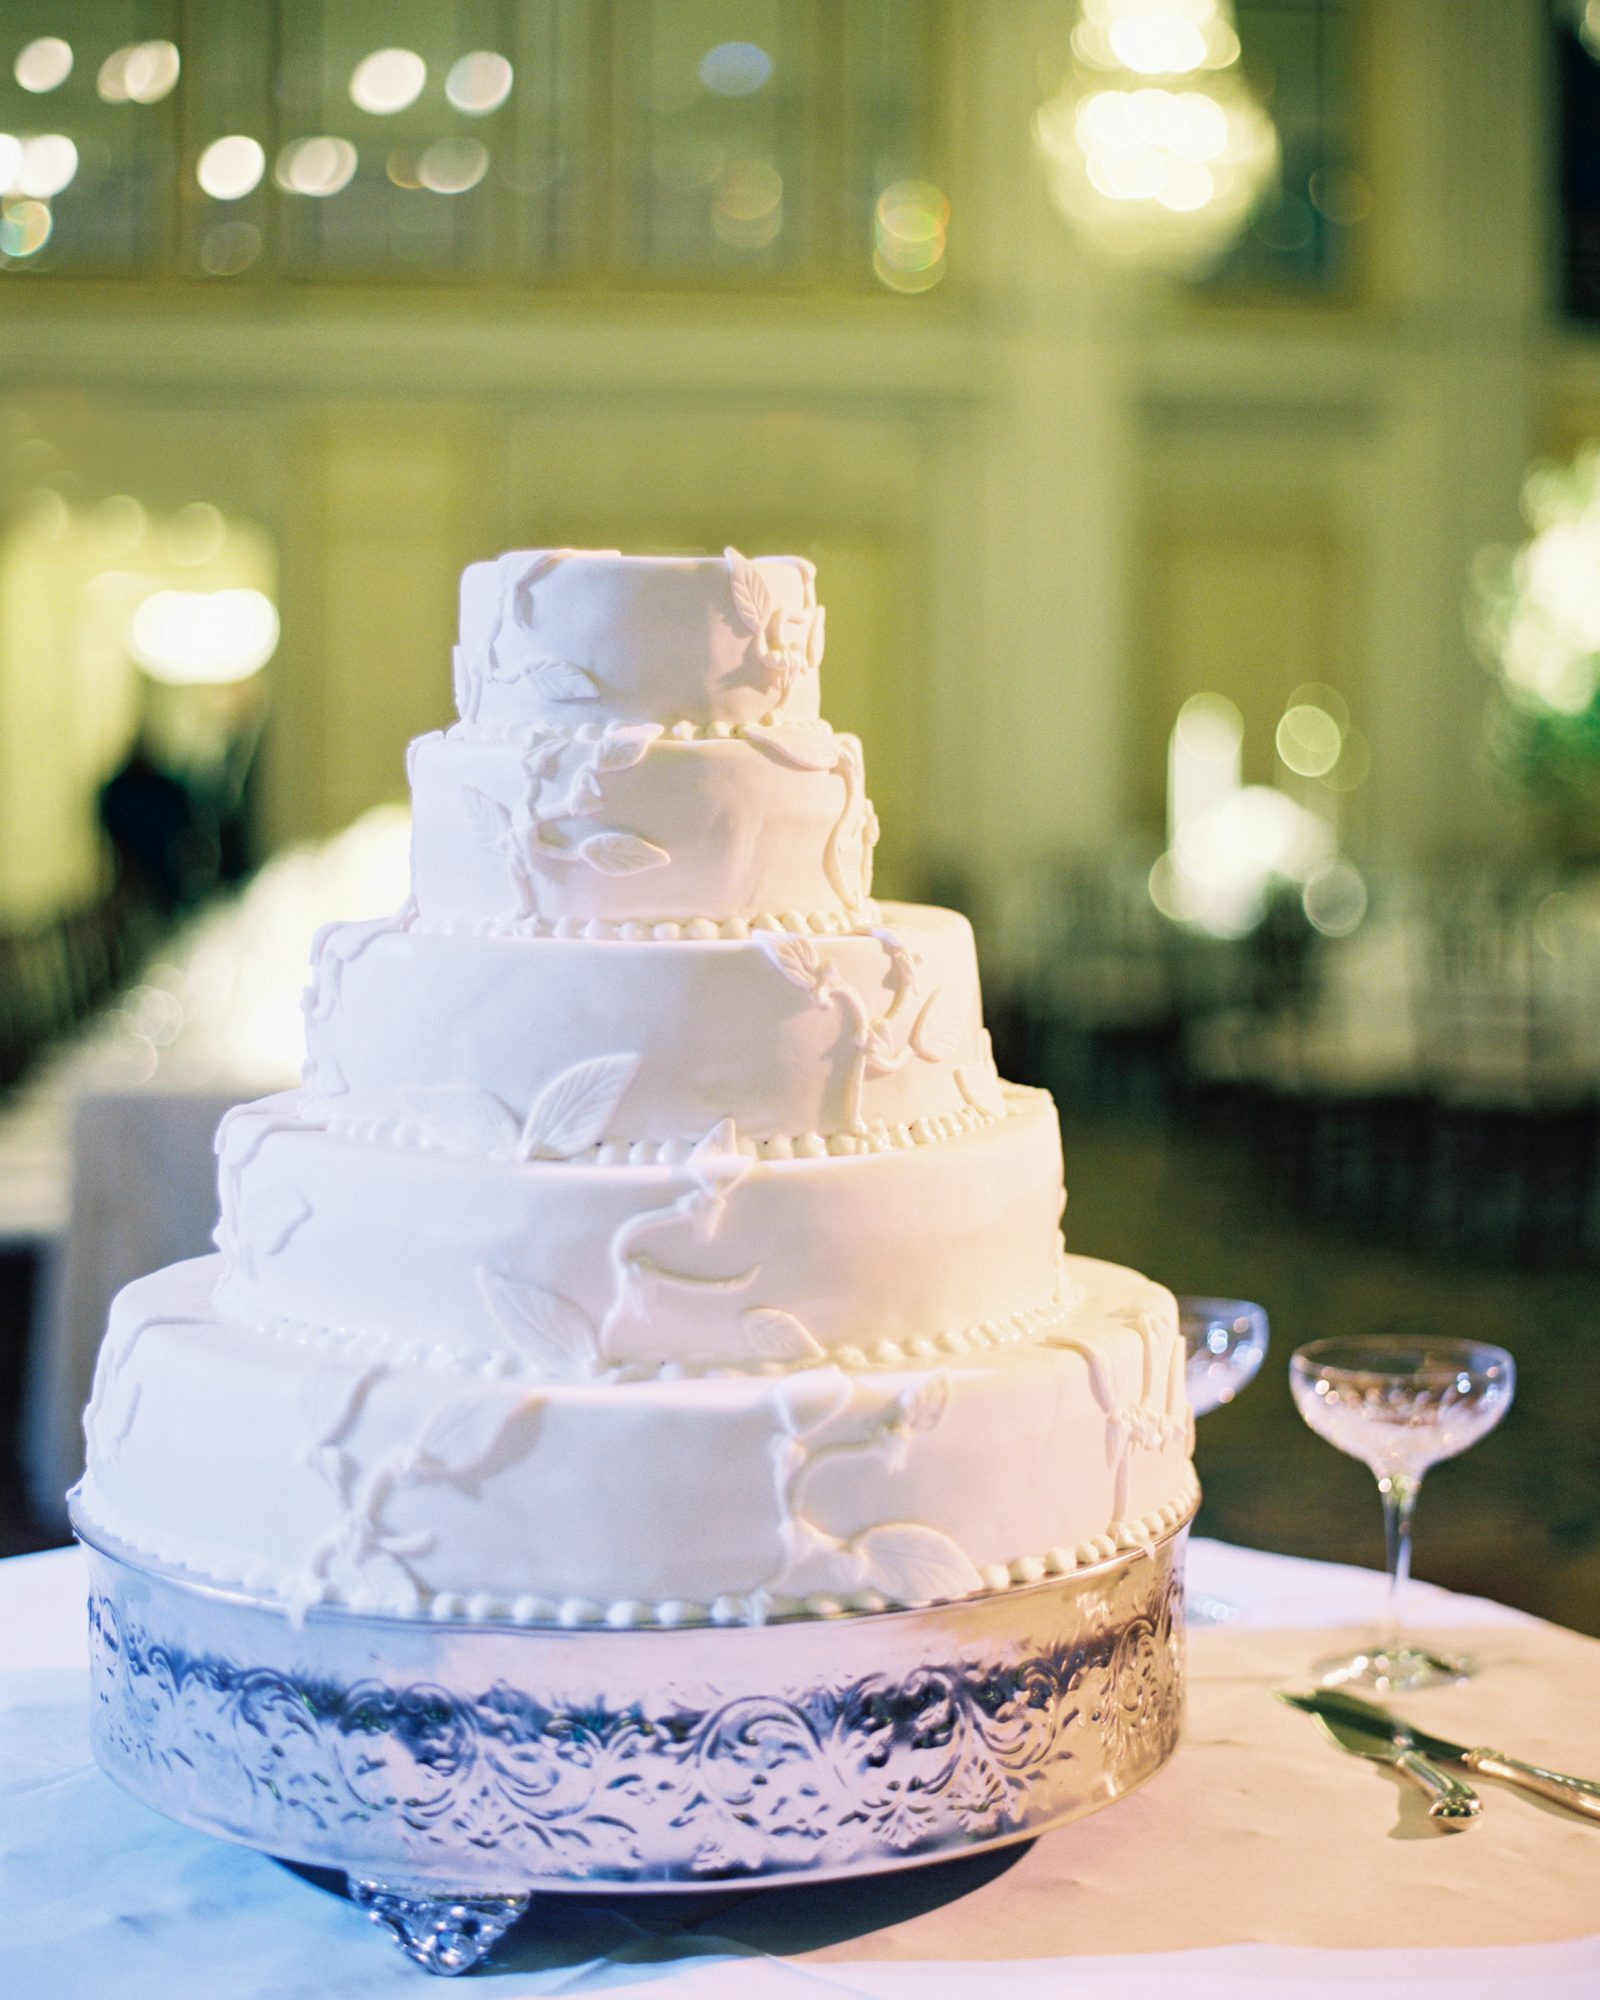 Why not choose a wedding cake that features your favorite flavor and your hubby's too? This five-tiered, white wedding cake by Willard InterContinental Washington combined the groom's go-to flavor, banana, and the bride's favorite, almond. They kept it simple on the outside, with a pretty floral design fitting for spring.